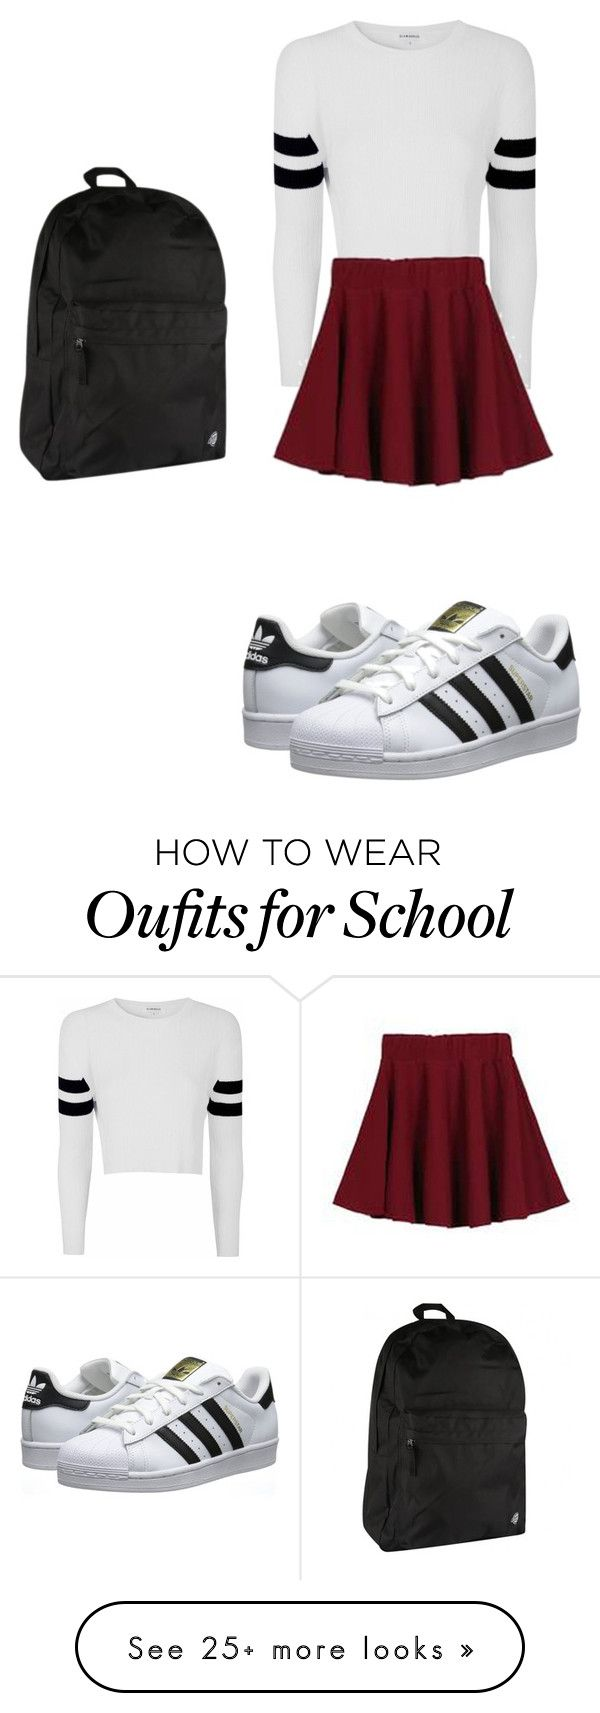 School outfit by hannaahmariie on Polyvore featuring Glamorous, adidas Originals and Dickies